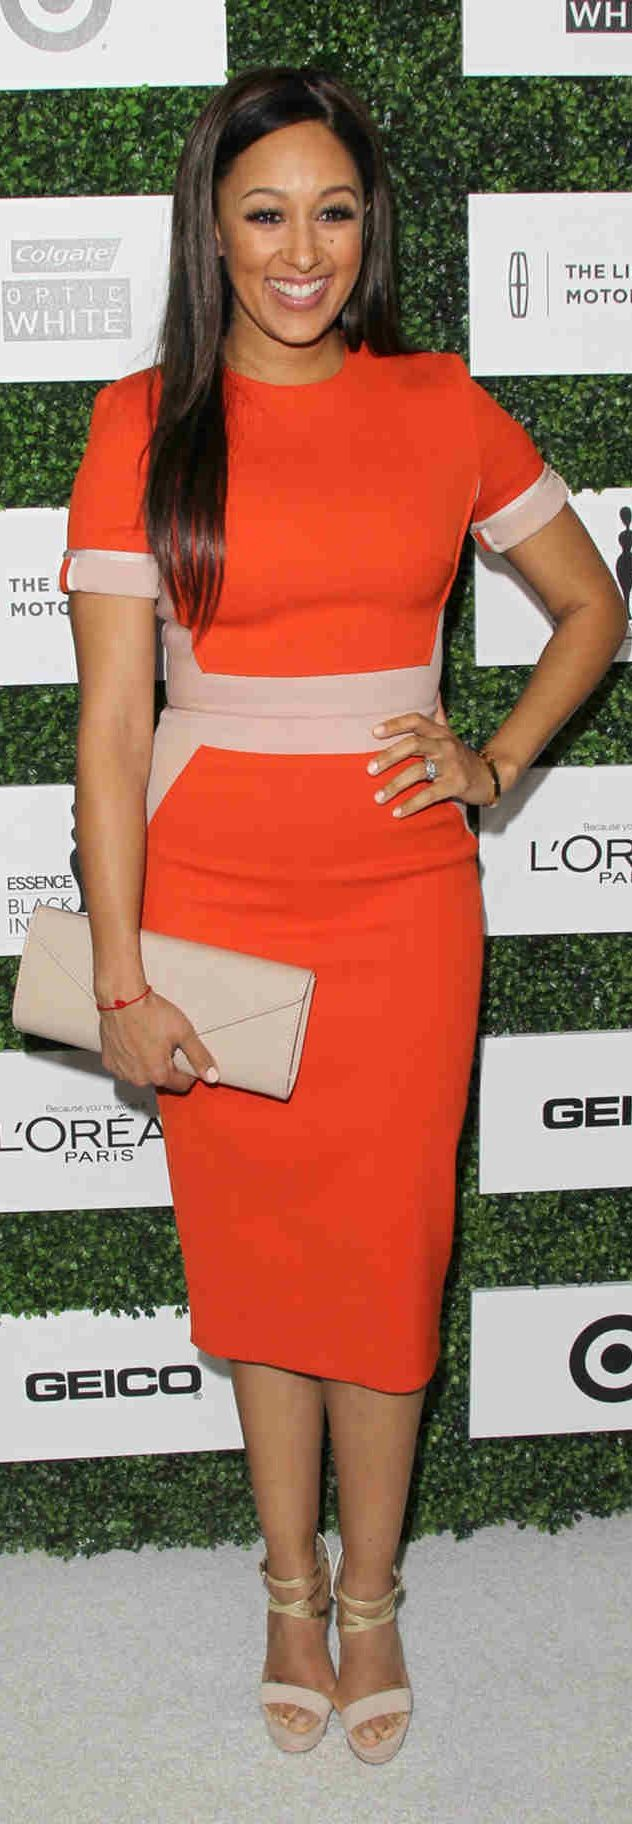 Tamera Mowry- Housley. I like this little tangerine dress